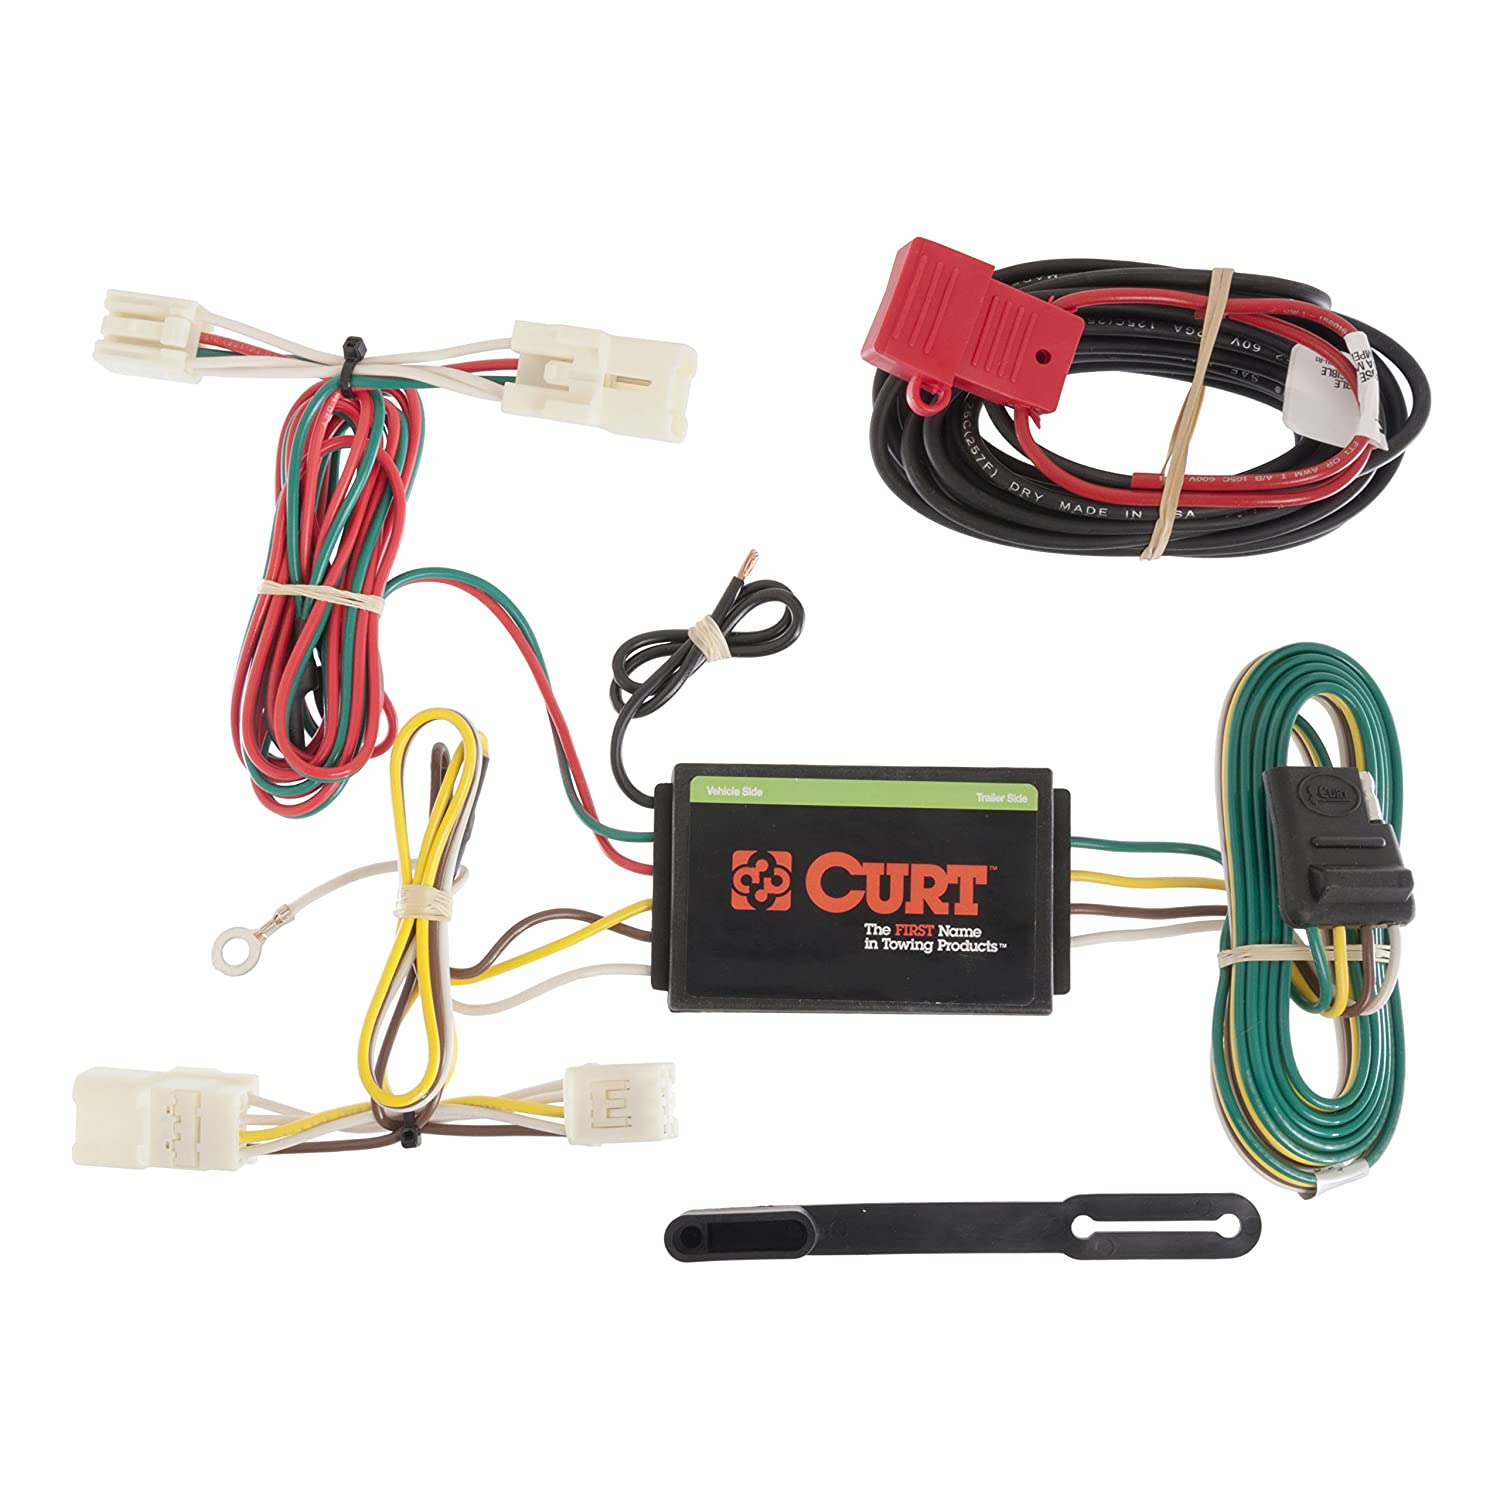 817l7jcQOtL._SL1500_ amazon com curt 56165 custom wiring harness automotive trailer hitch wiring harness at gsmportal.co